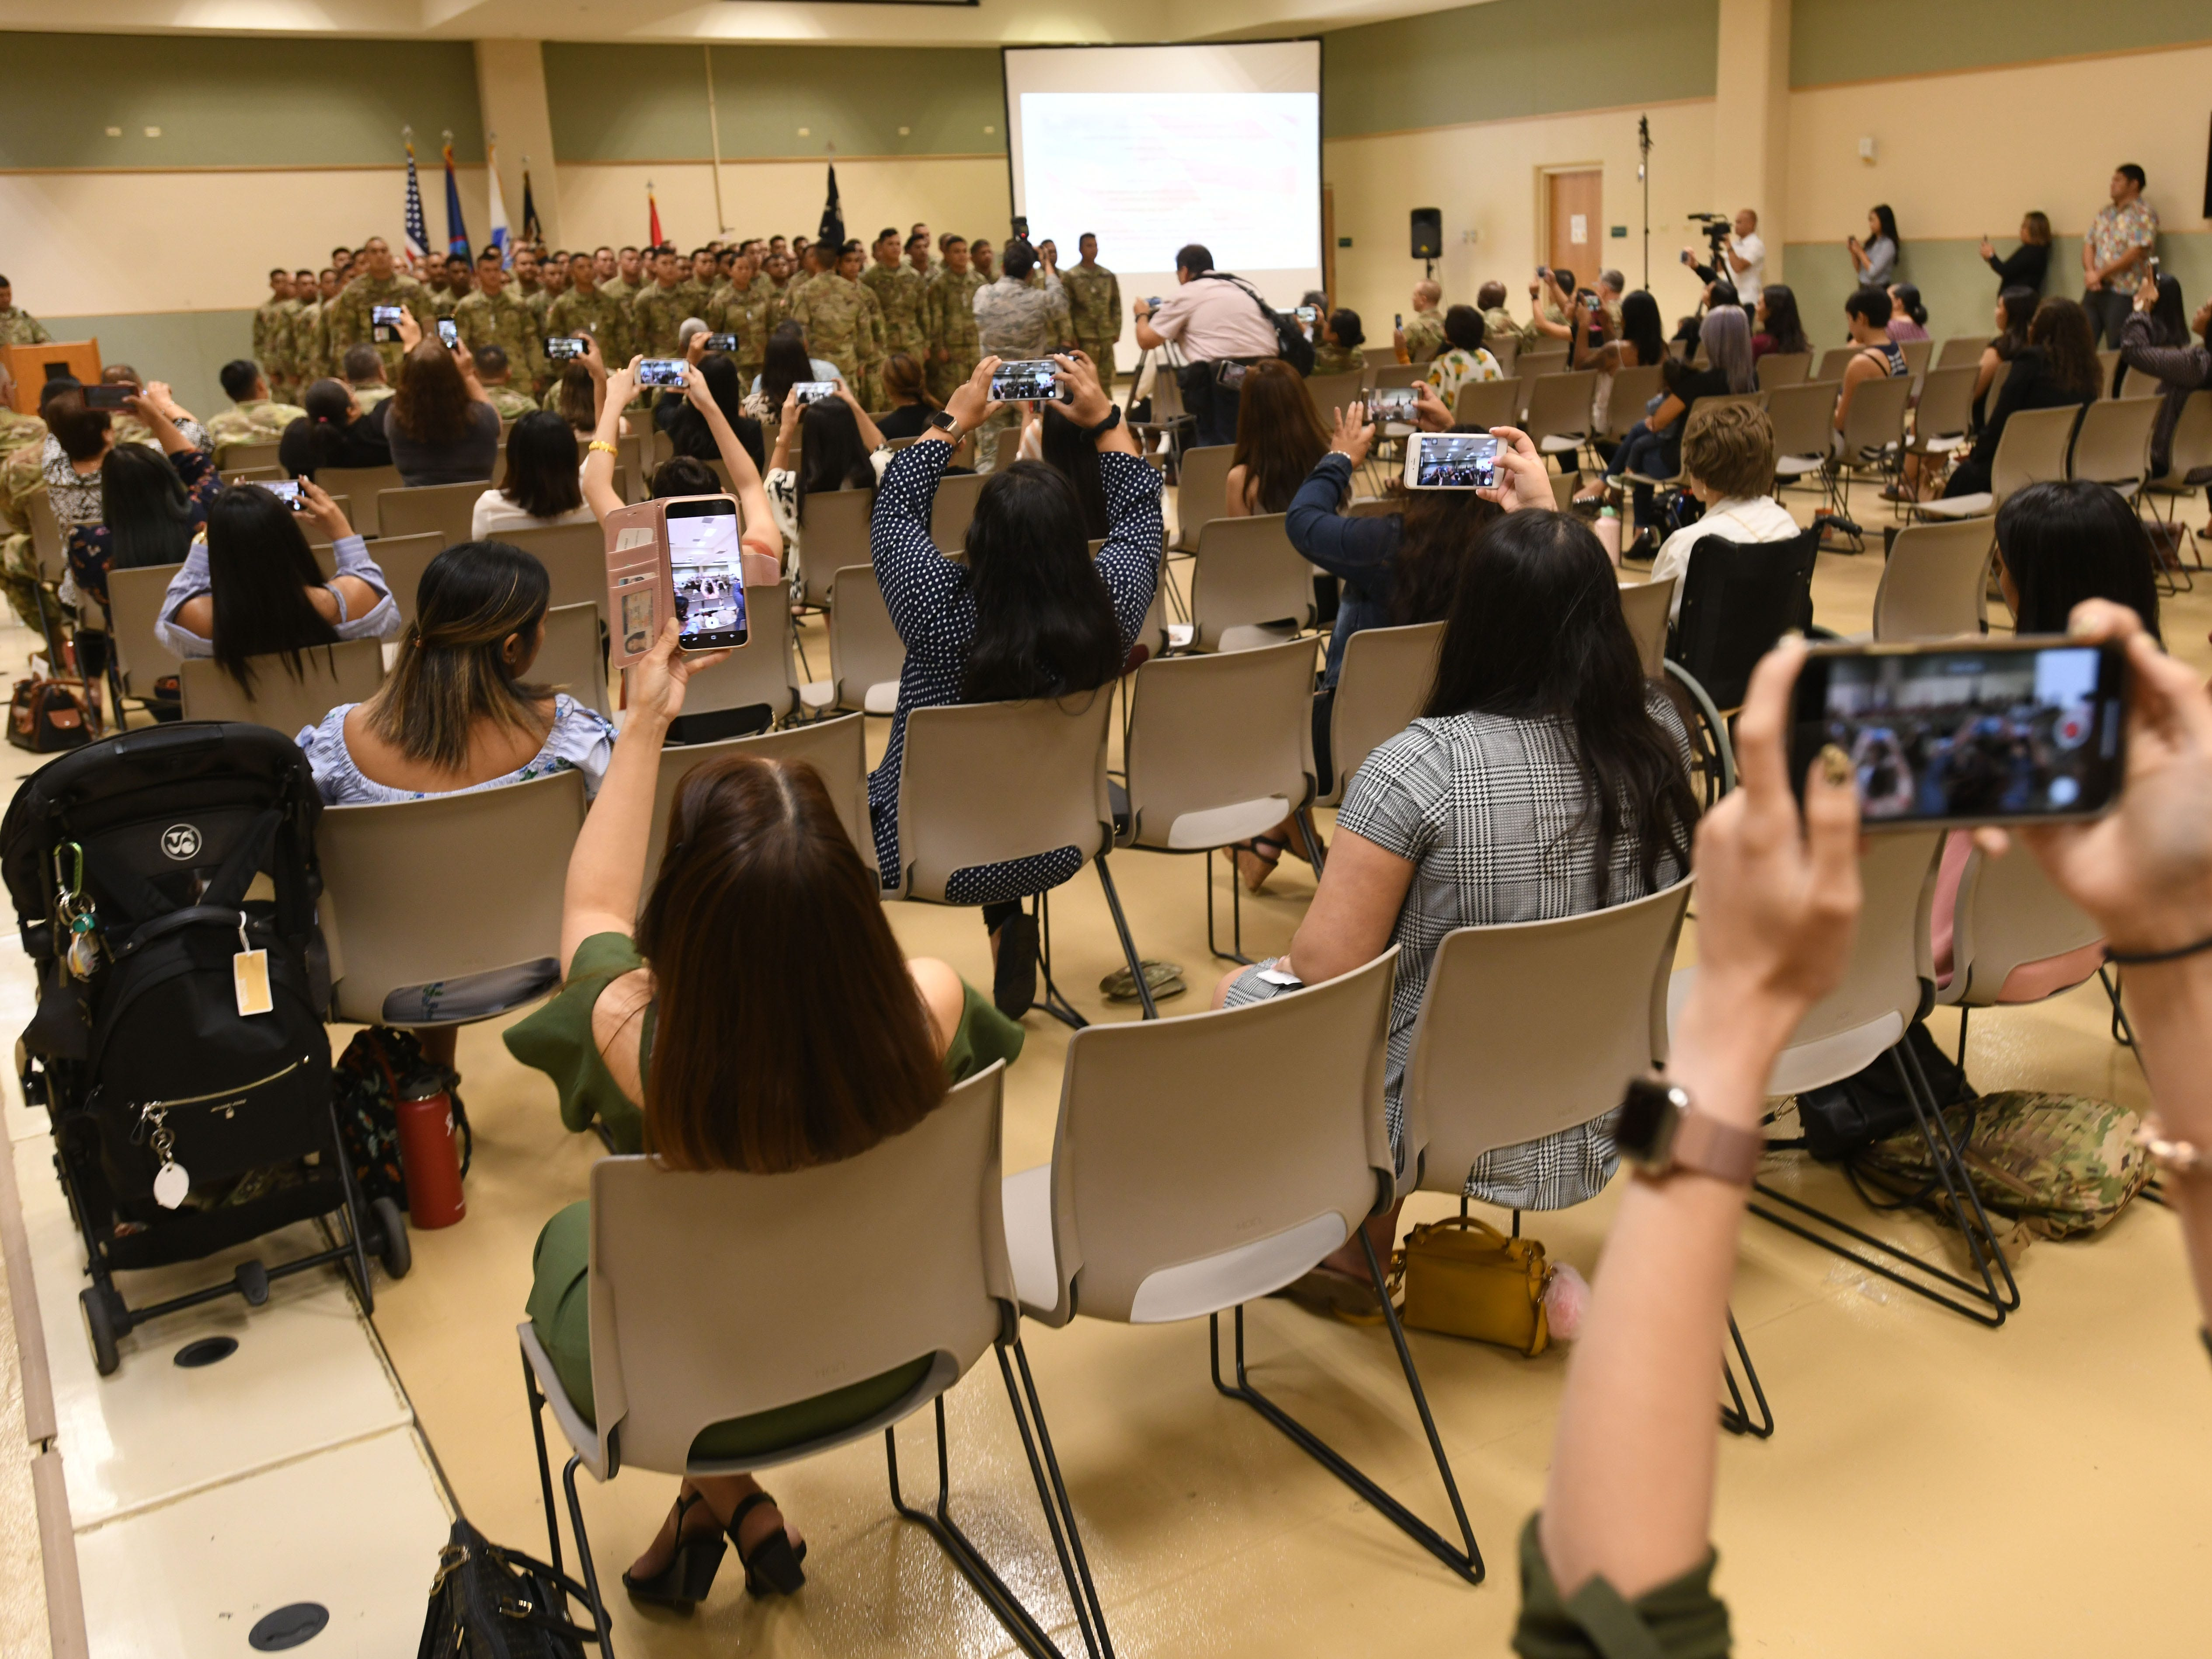 Family members and others capture images of service members reciting the Soldier's during a mobilization ceremony at the Guam National Guard compound in Barrigada on Thursday, Jan. 3, 2019. Seventy-one members with the Guam Army National Guard's 254th Security Forces 1st-294th Infantry Regiment were recognized as they begin the process of providing security for the Terminal High Altitude Area Defense Site at Andersen Air Force Base, according to a Guard release.